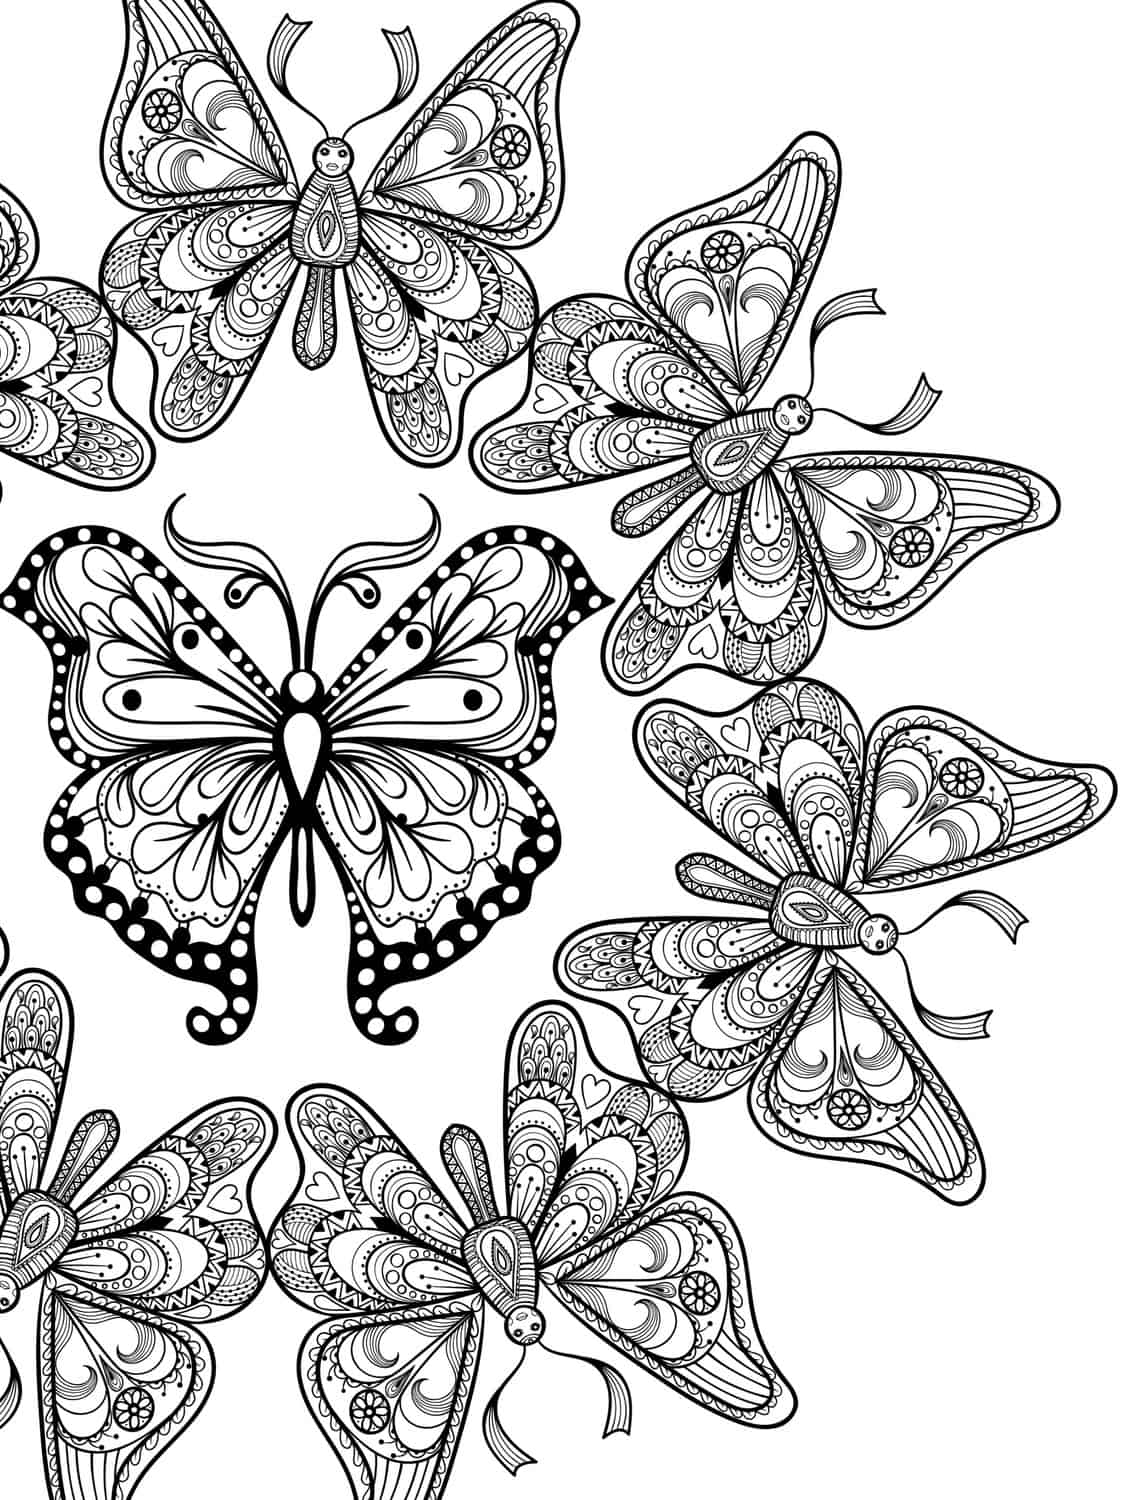 23 Free Printable Insect Animal Adult Coloring Pages Coloring Sheets Printable For Adults